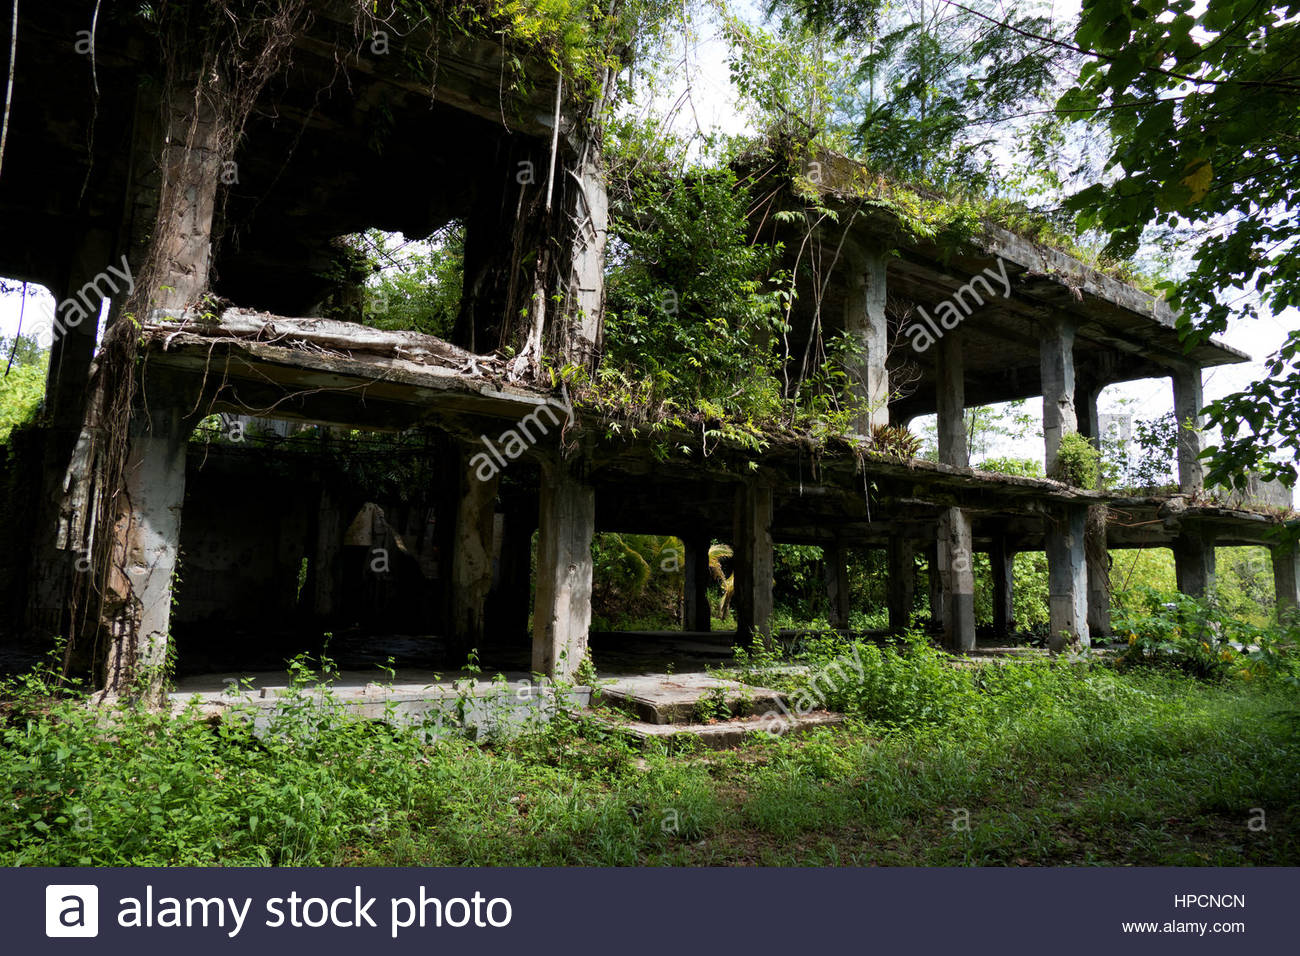 Japanese military headquarters. Battle of Peleliu 1944 (Operation Stalemate II) fought between the US and Japan - Stock Image